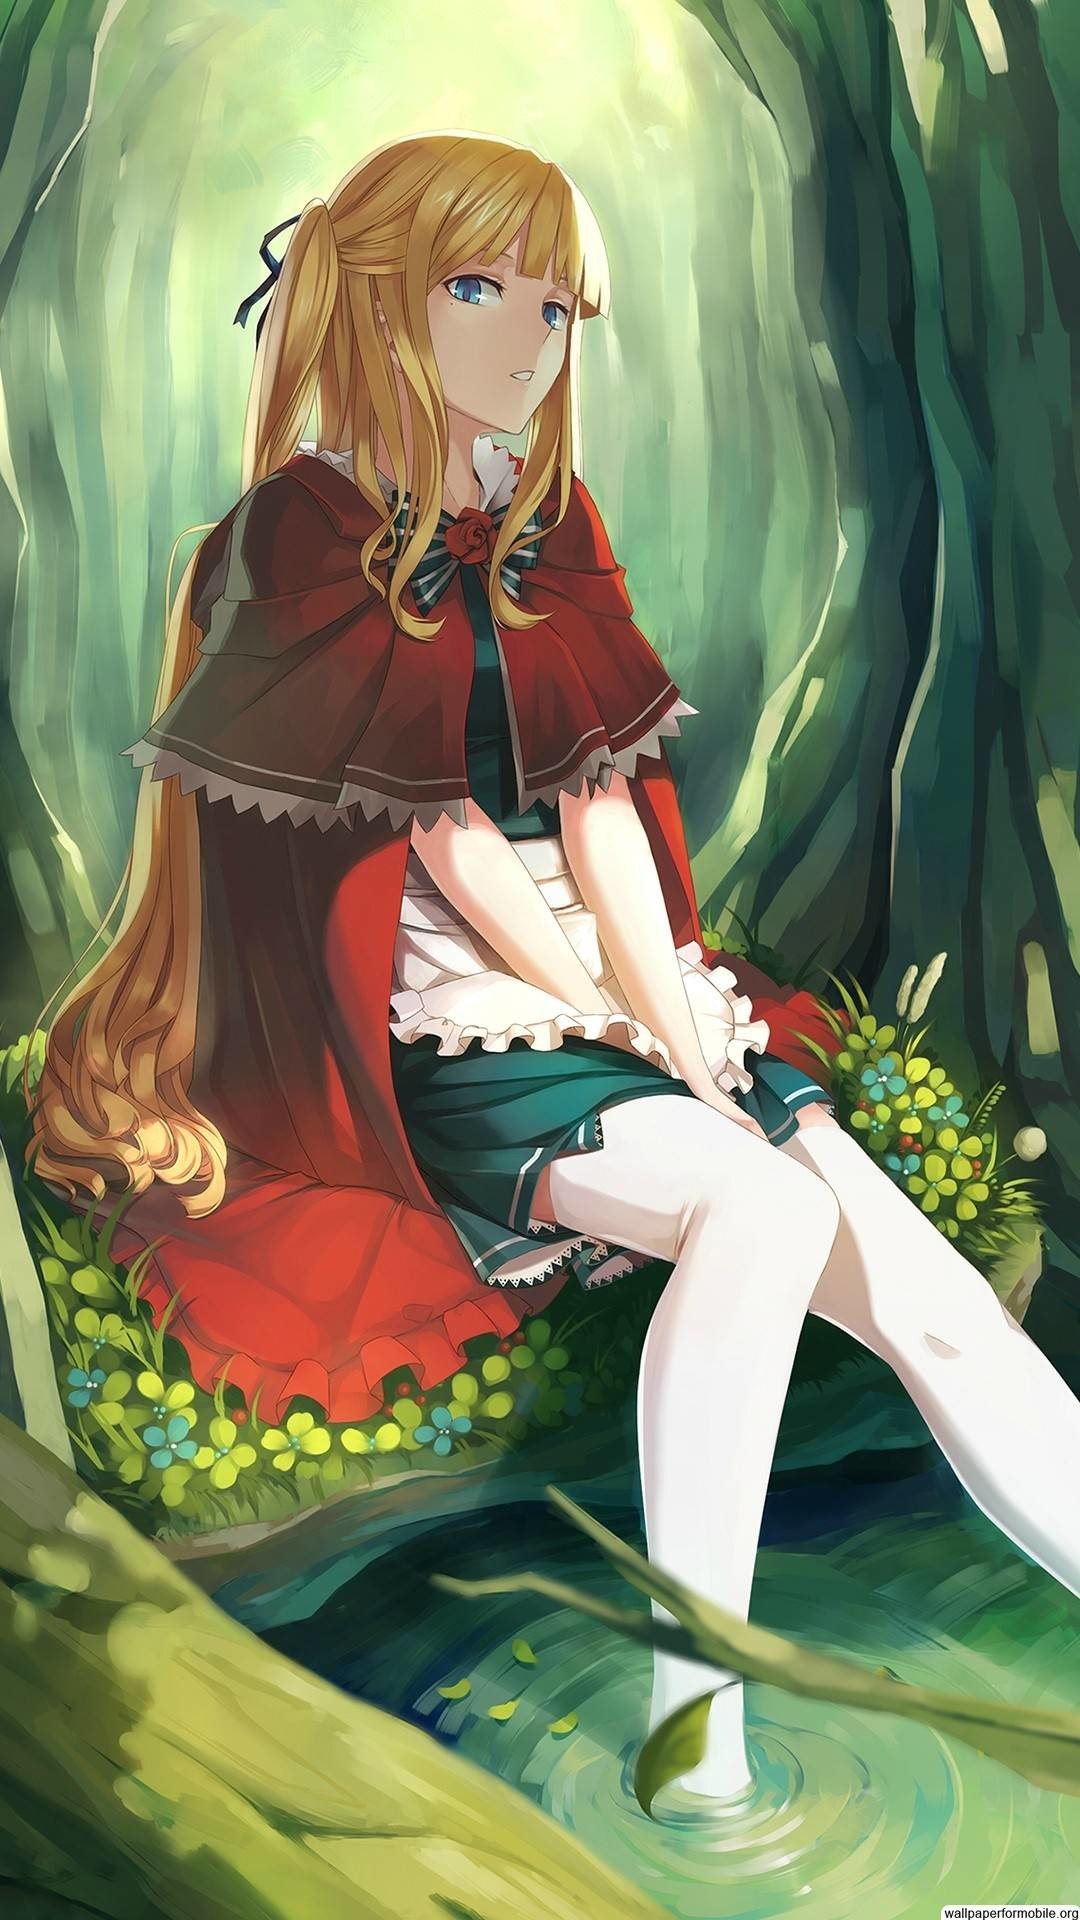 Explore Cell Phone Wallpapers Girl Pics And More Cute Anime Red Riding Hood 1080x1920 Wallpaper Teahub Io